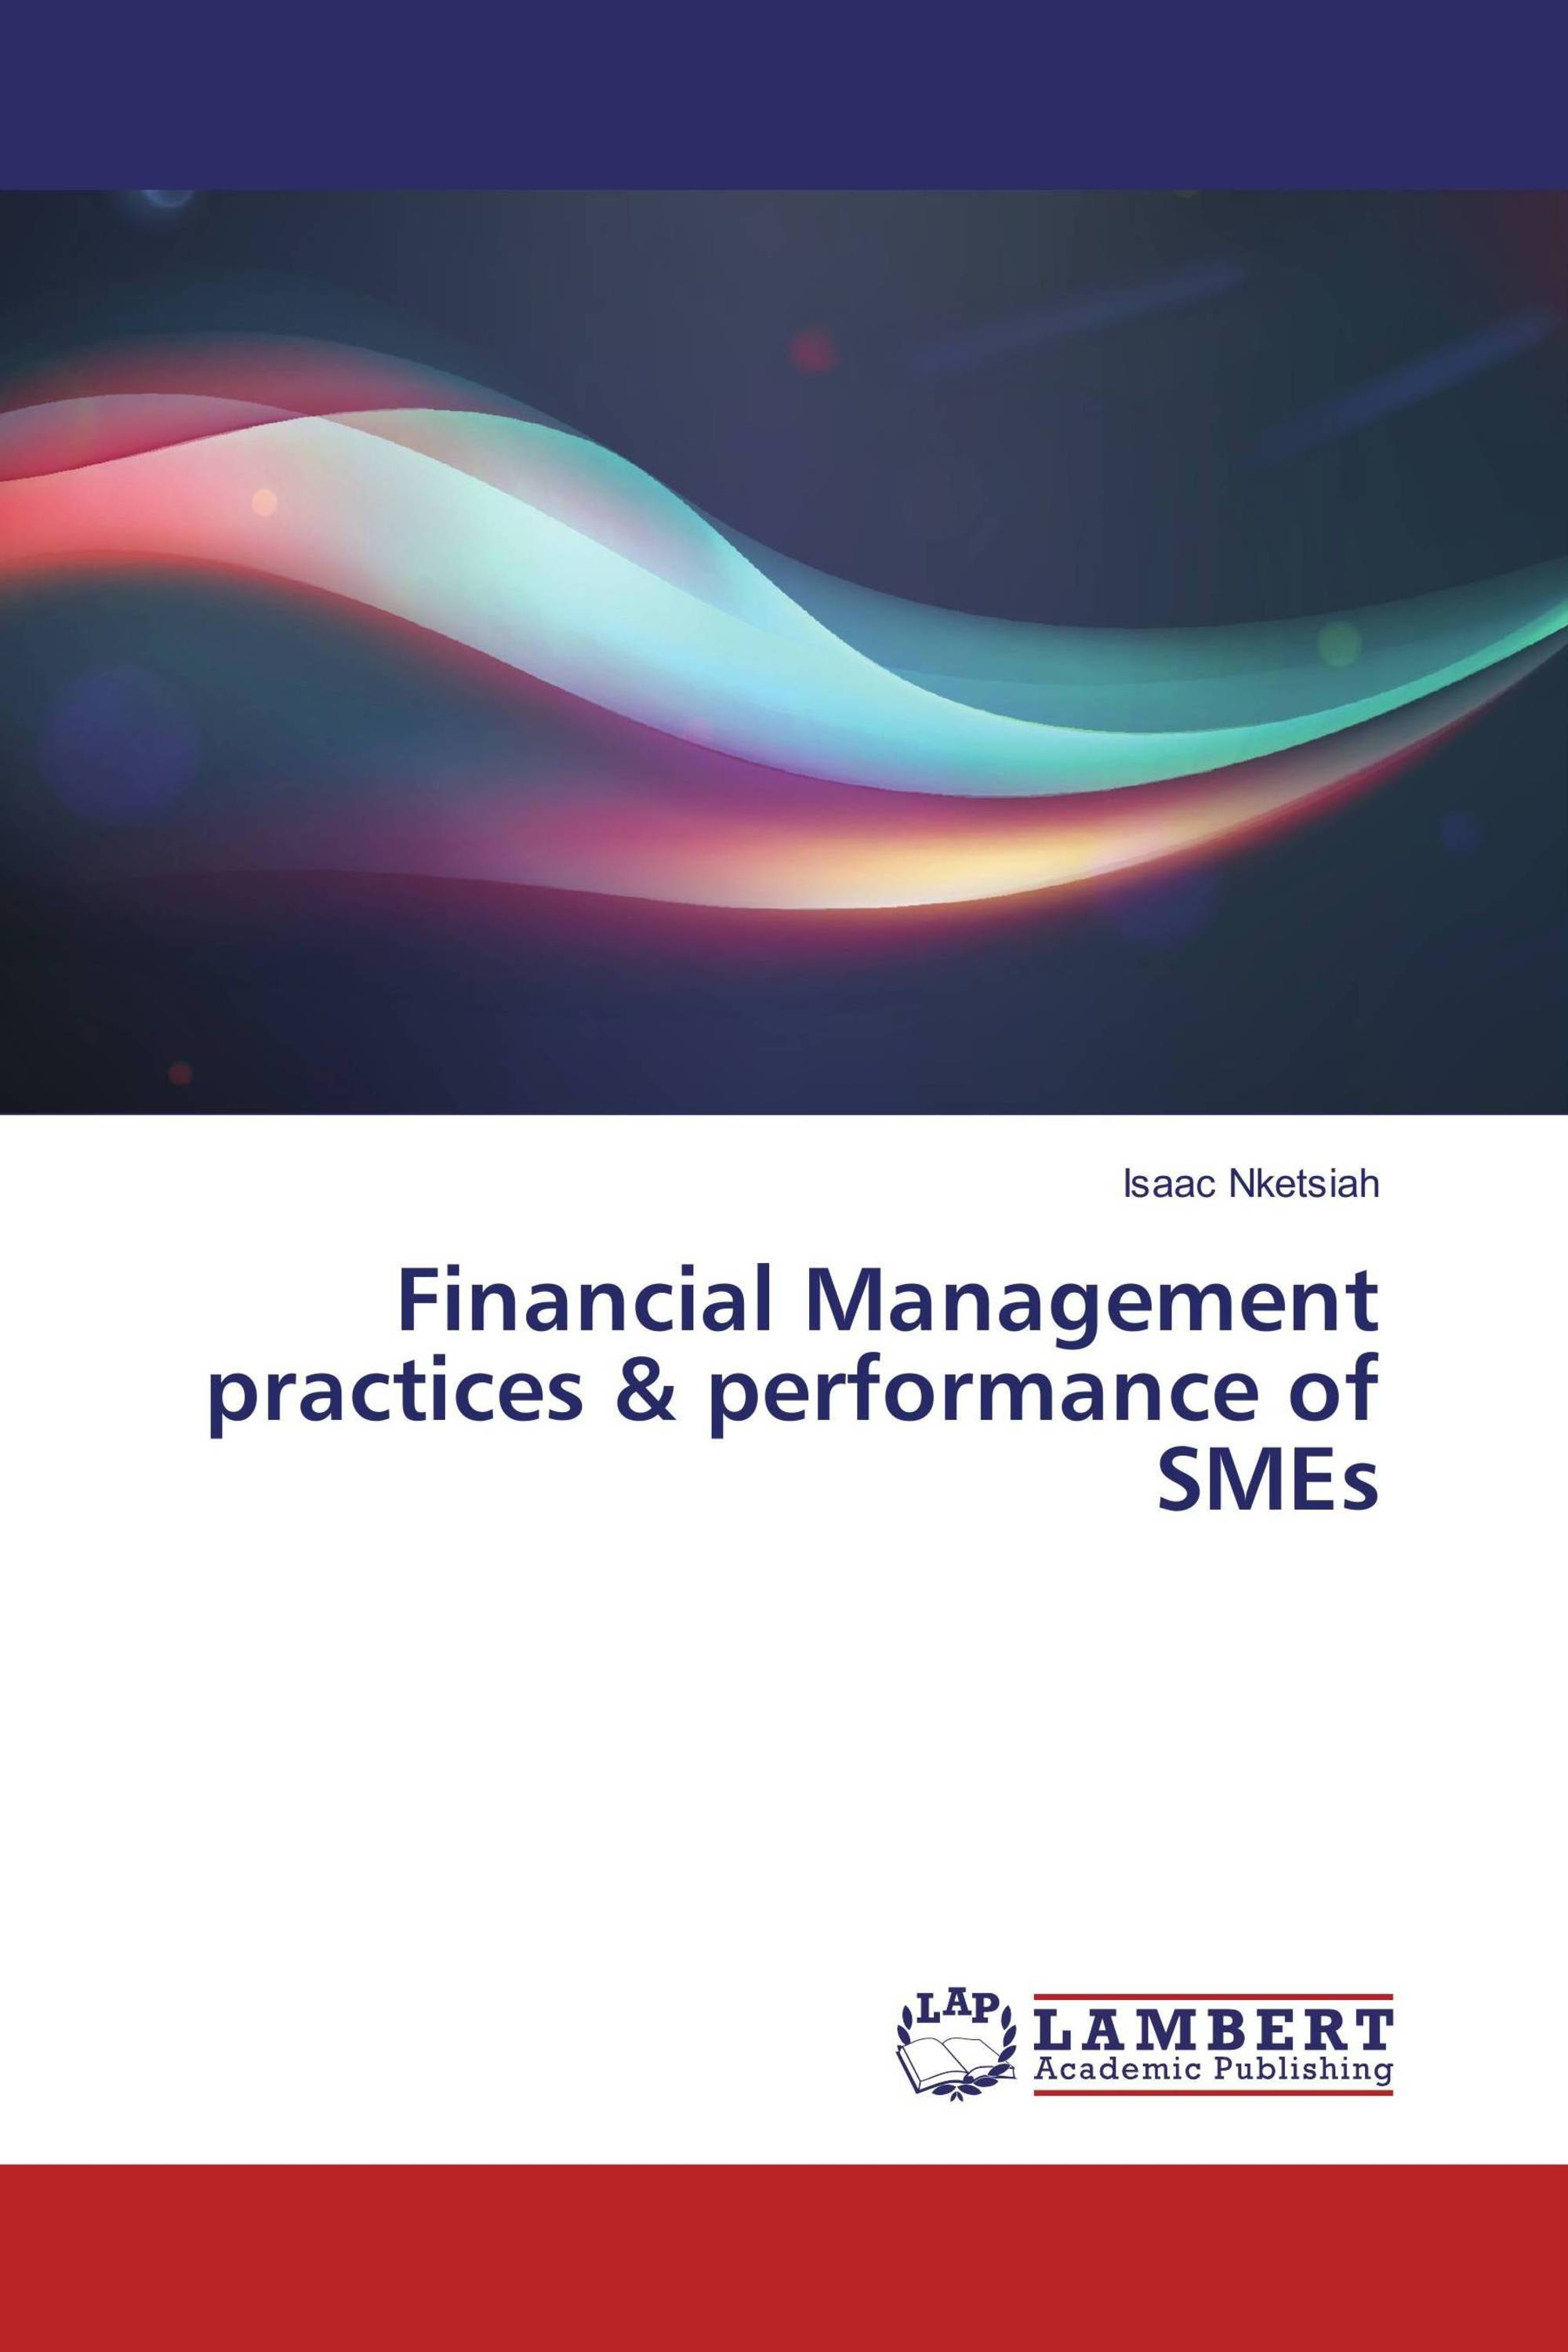 financial management practices thesis International journal of business, humanities and technology vol3 no5 may 2013 75 the impact of inventory management practices on financial performance of sugar.